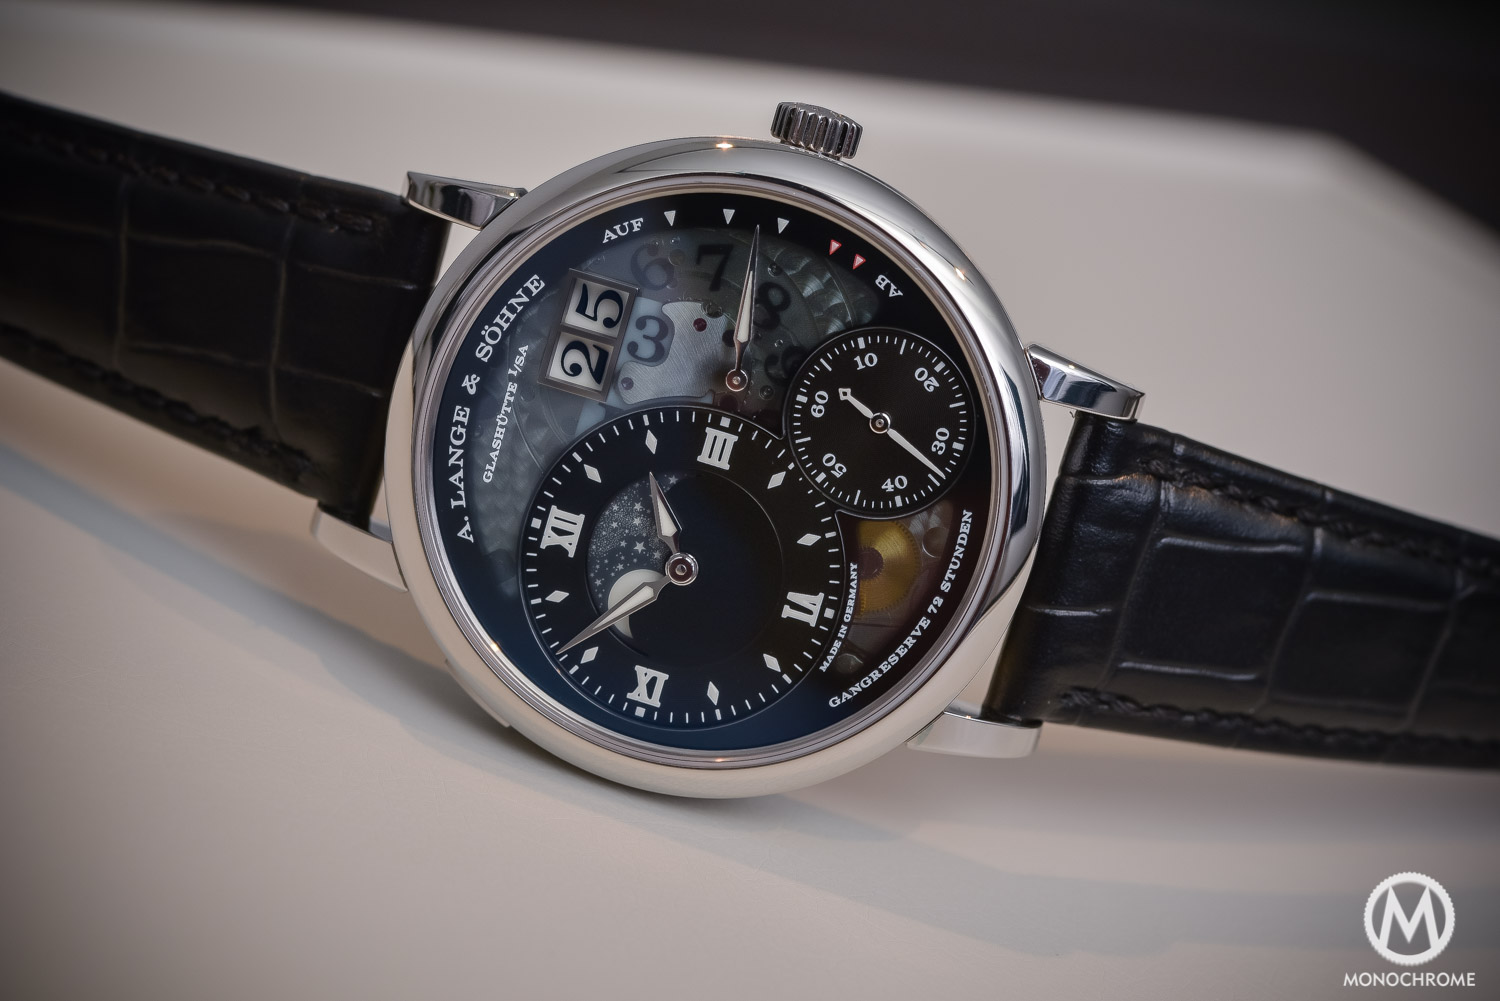 SIHH 2016 - Hands-on review of the A. Lange & Sohne Grand Lange 1 Moon Phase Lumen